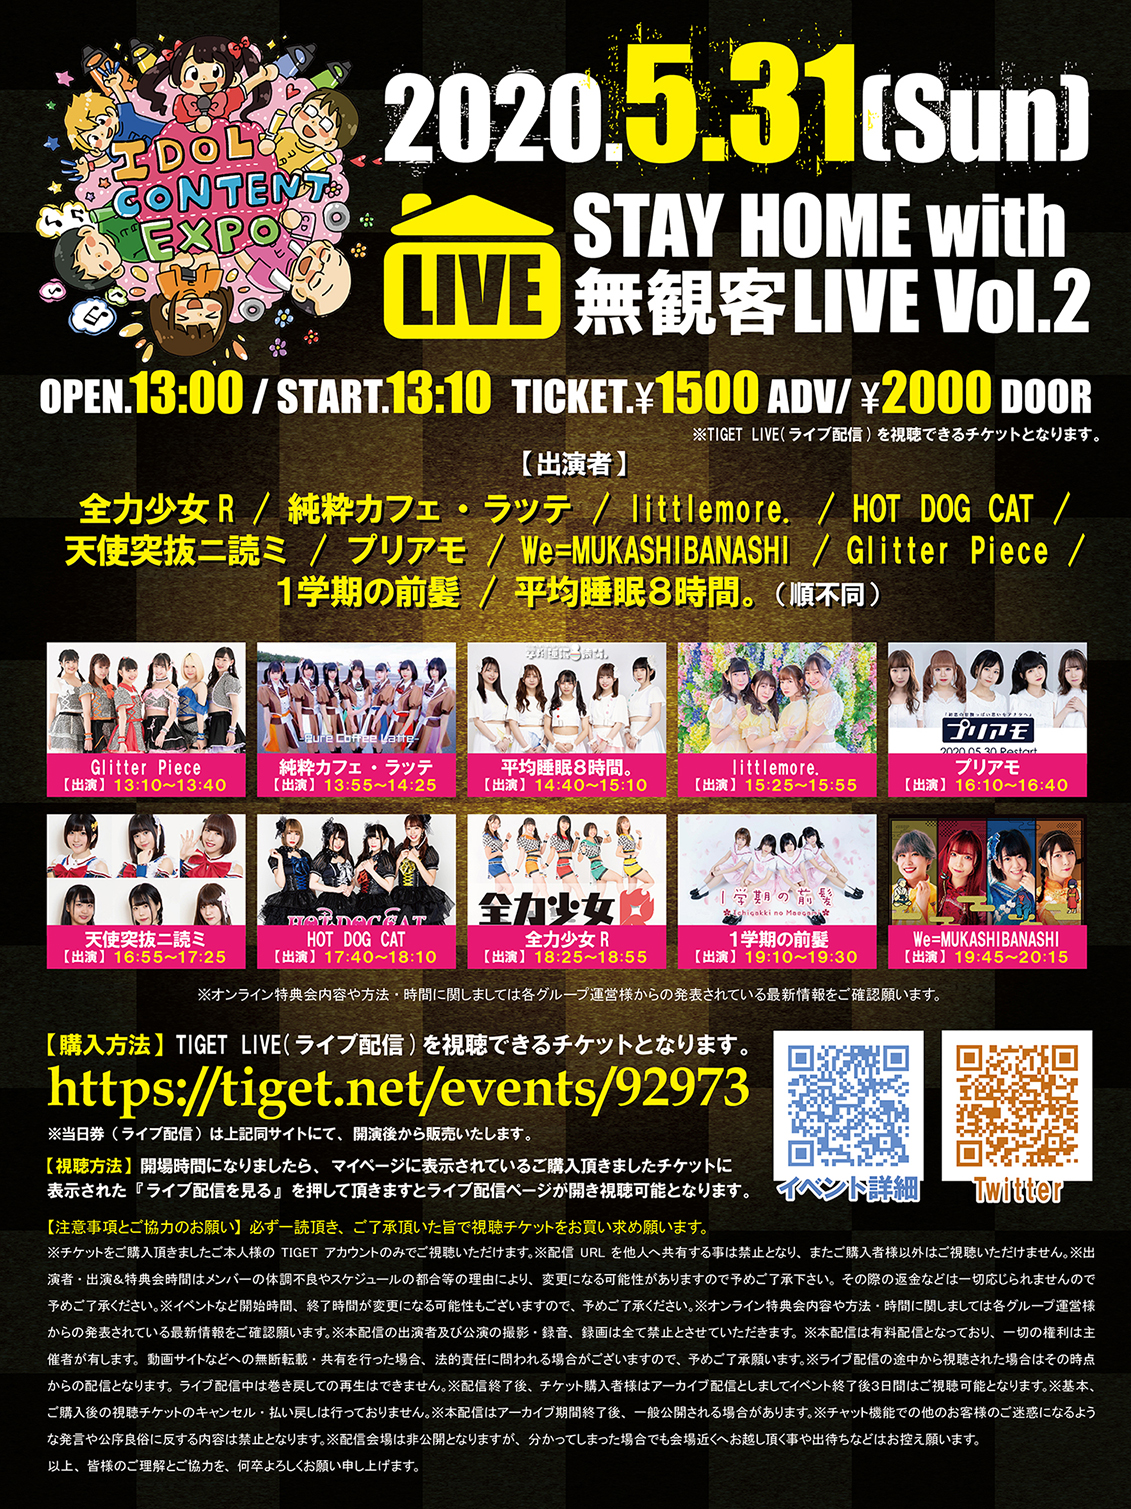 IDOL CONTENT EXPO ~ STAY HOME with 無観客LIVE Vol.2~